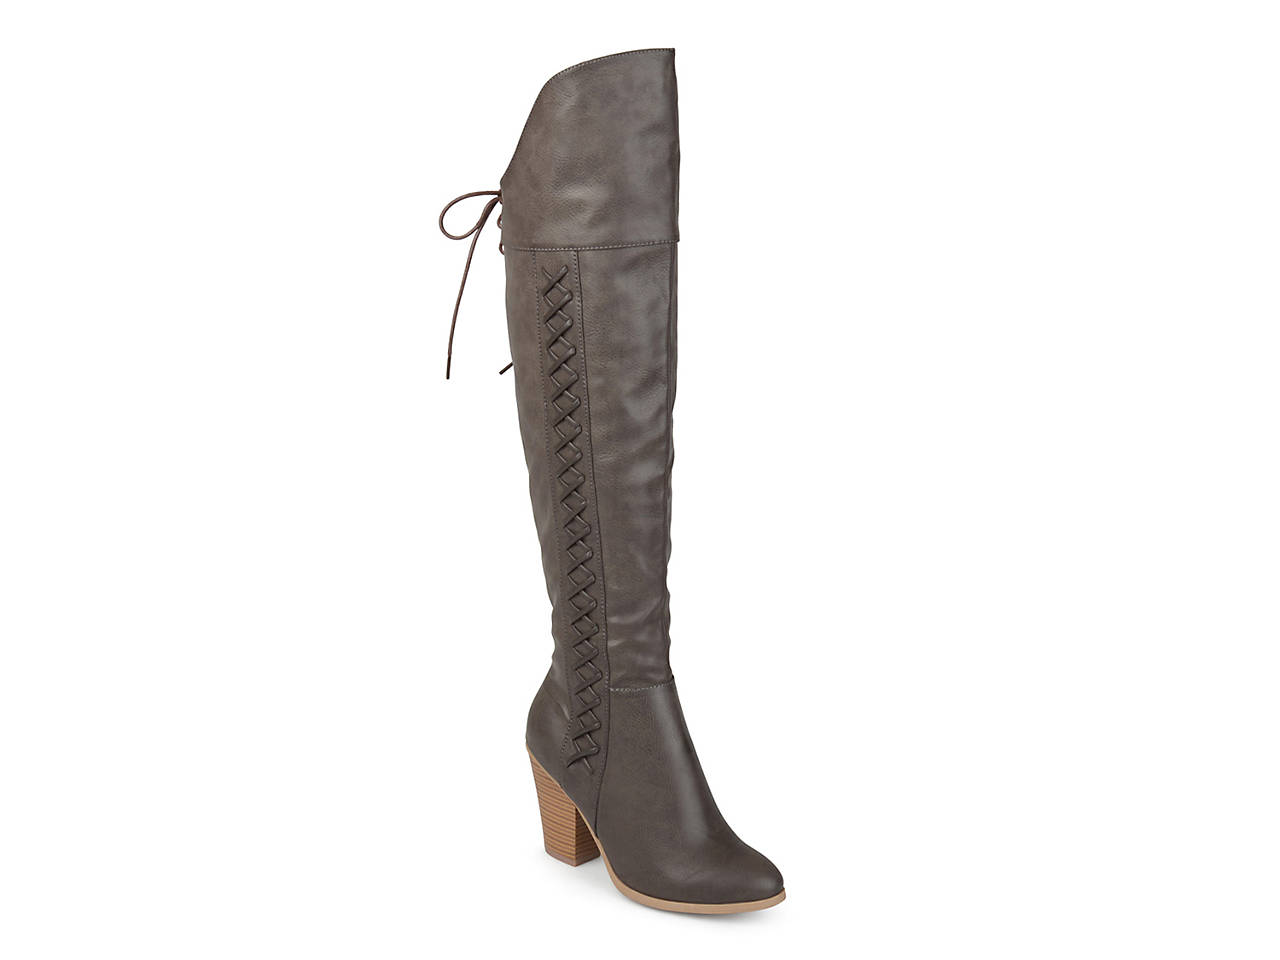 f5bad919ed3 Spritz Wide Calf Over The Knee Boot